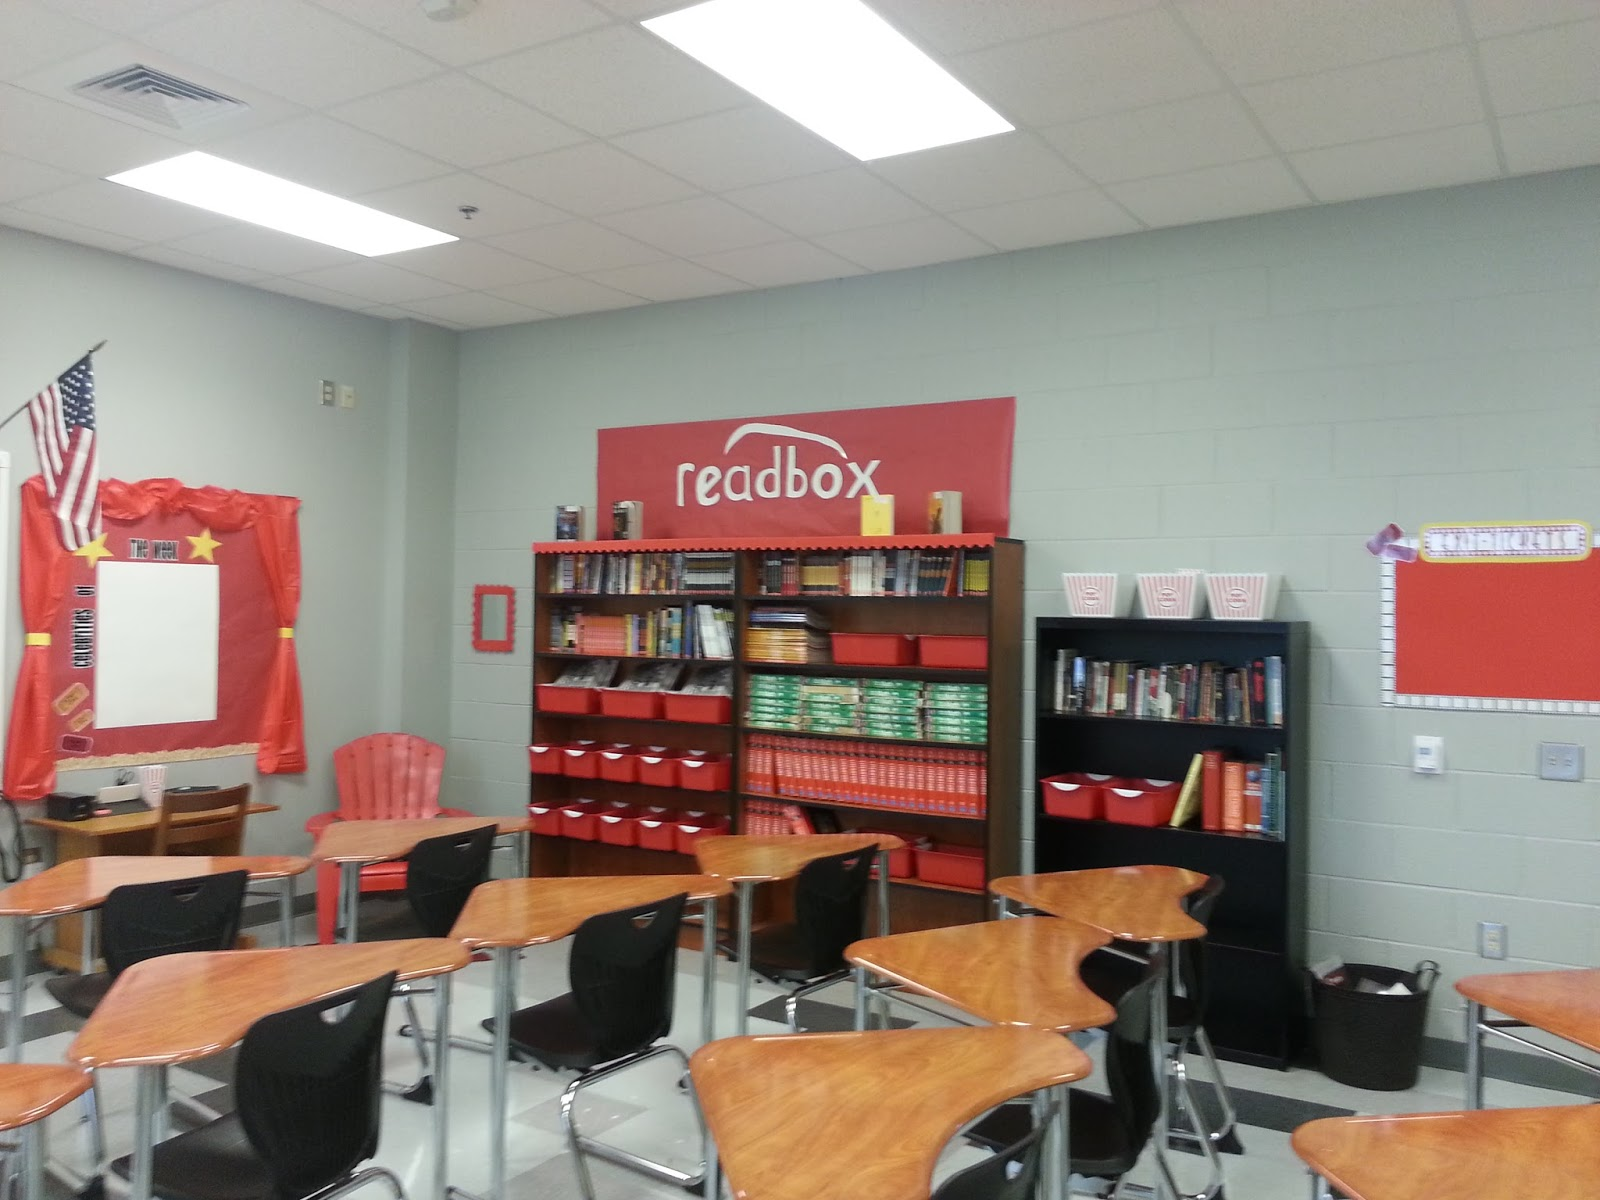 Classroom Theme Ideas For Middle School : Middle school math classroom themes yachtarabella